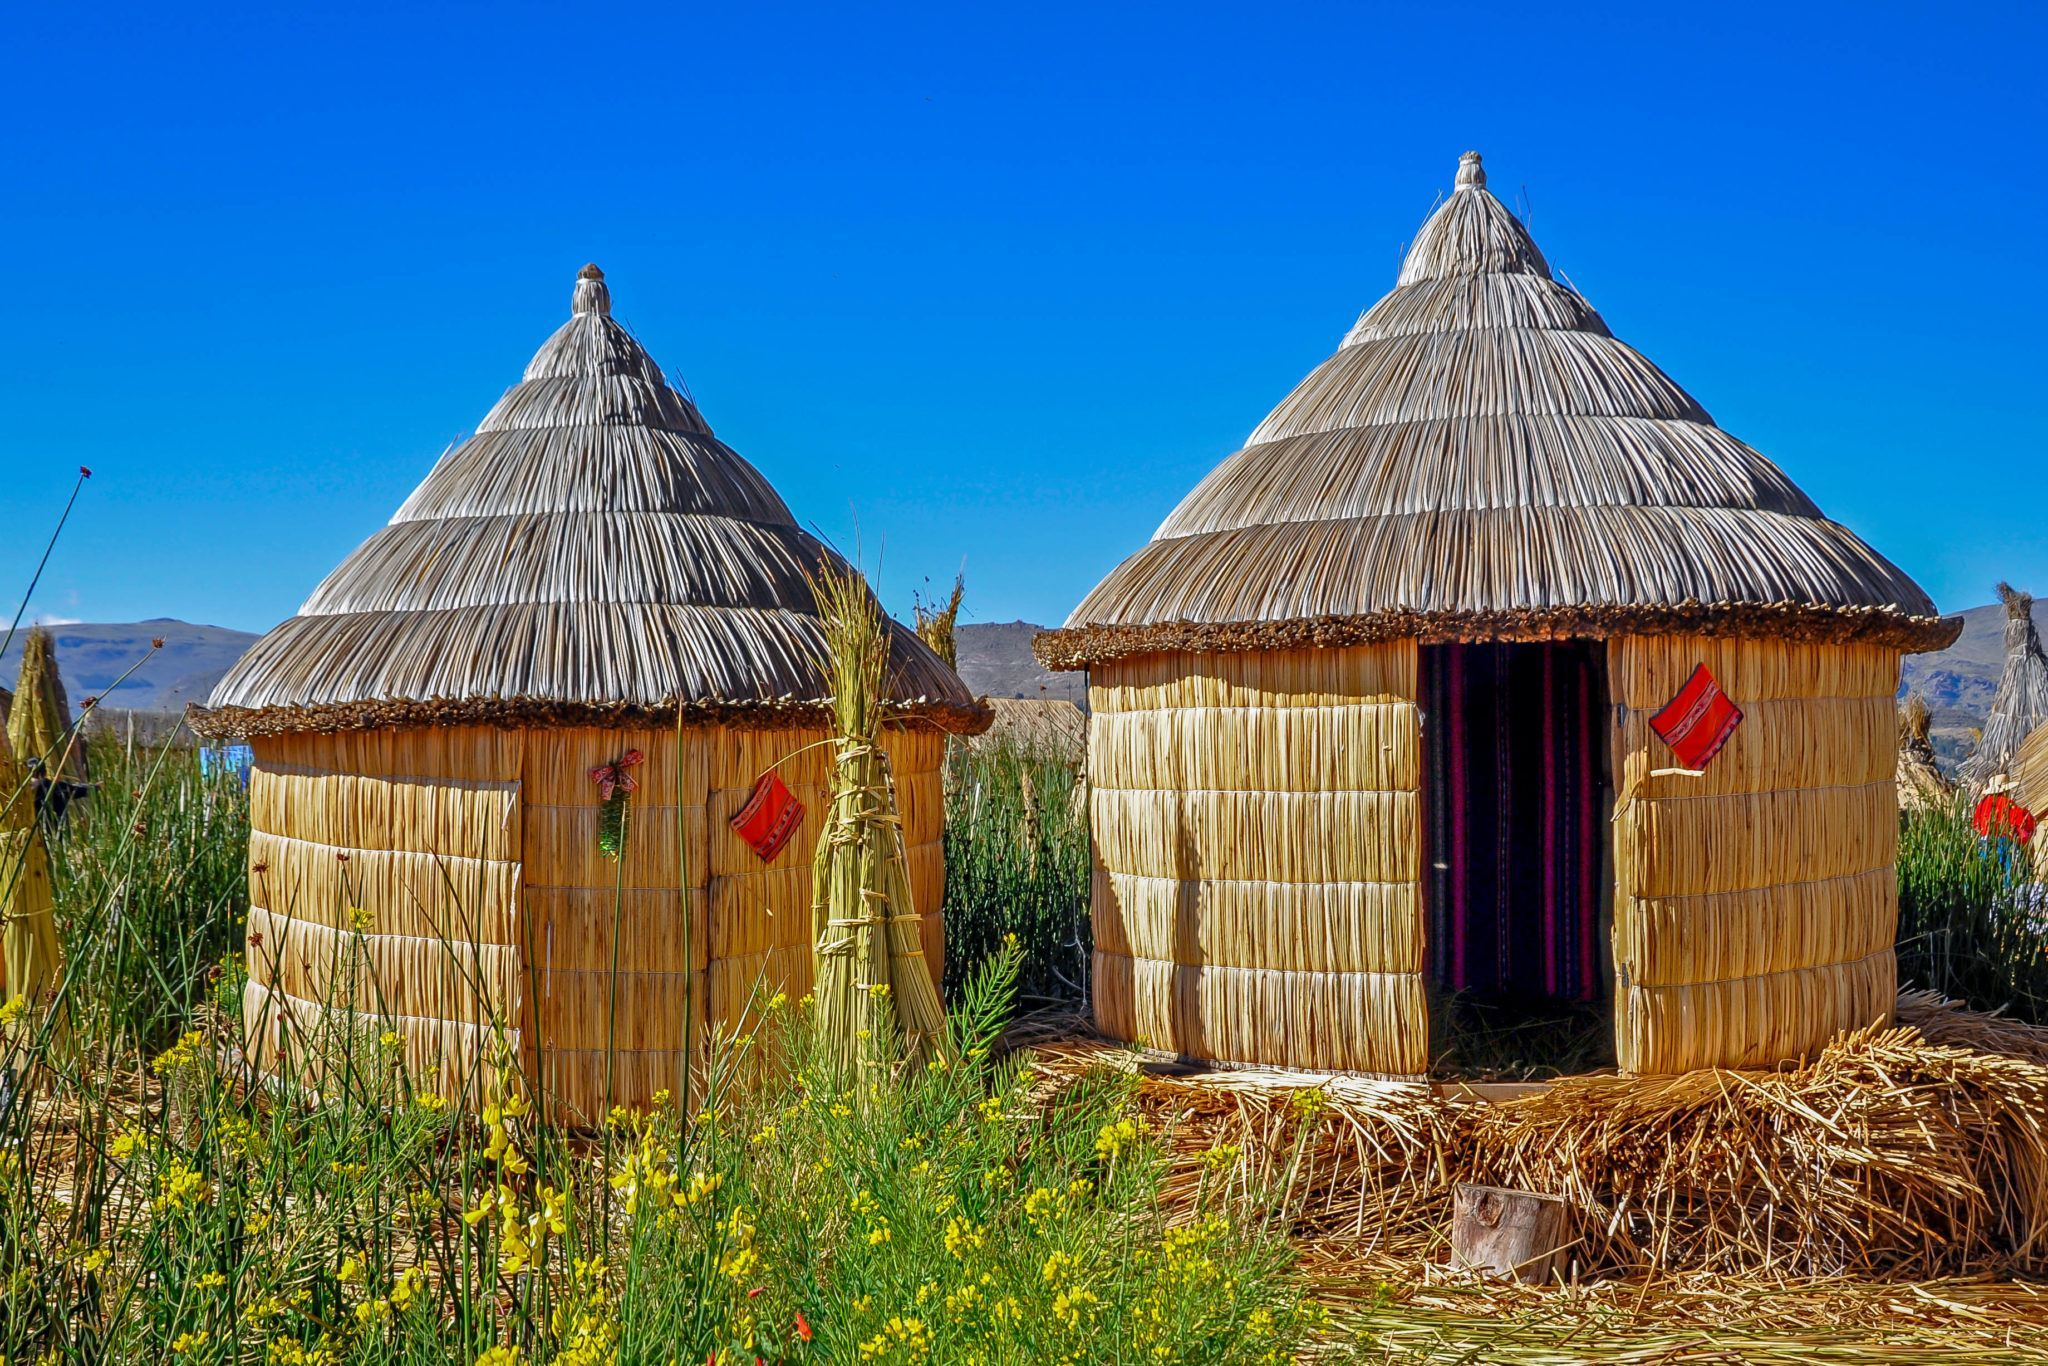 Huts on the Uros Islands